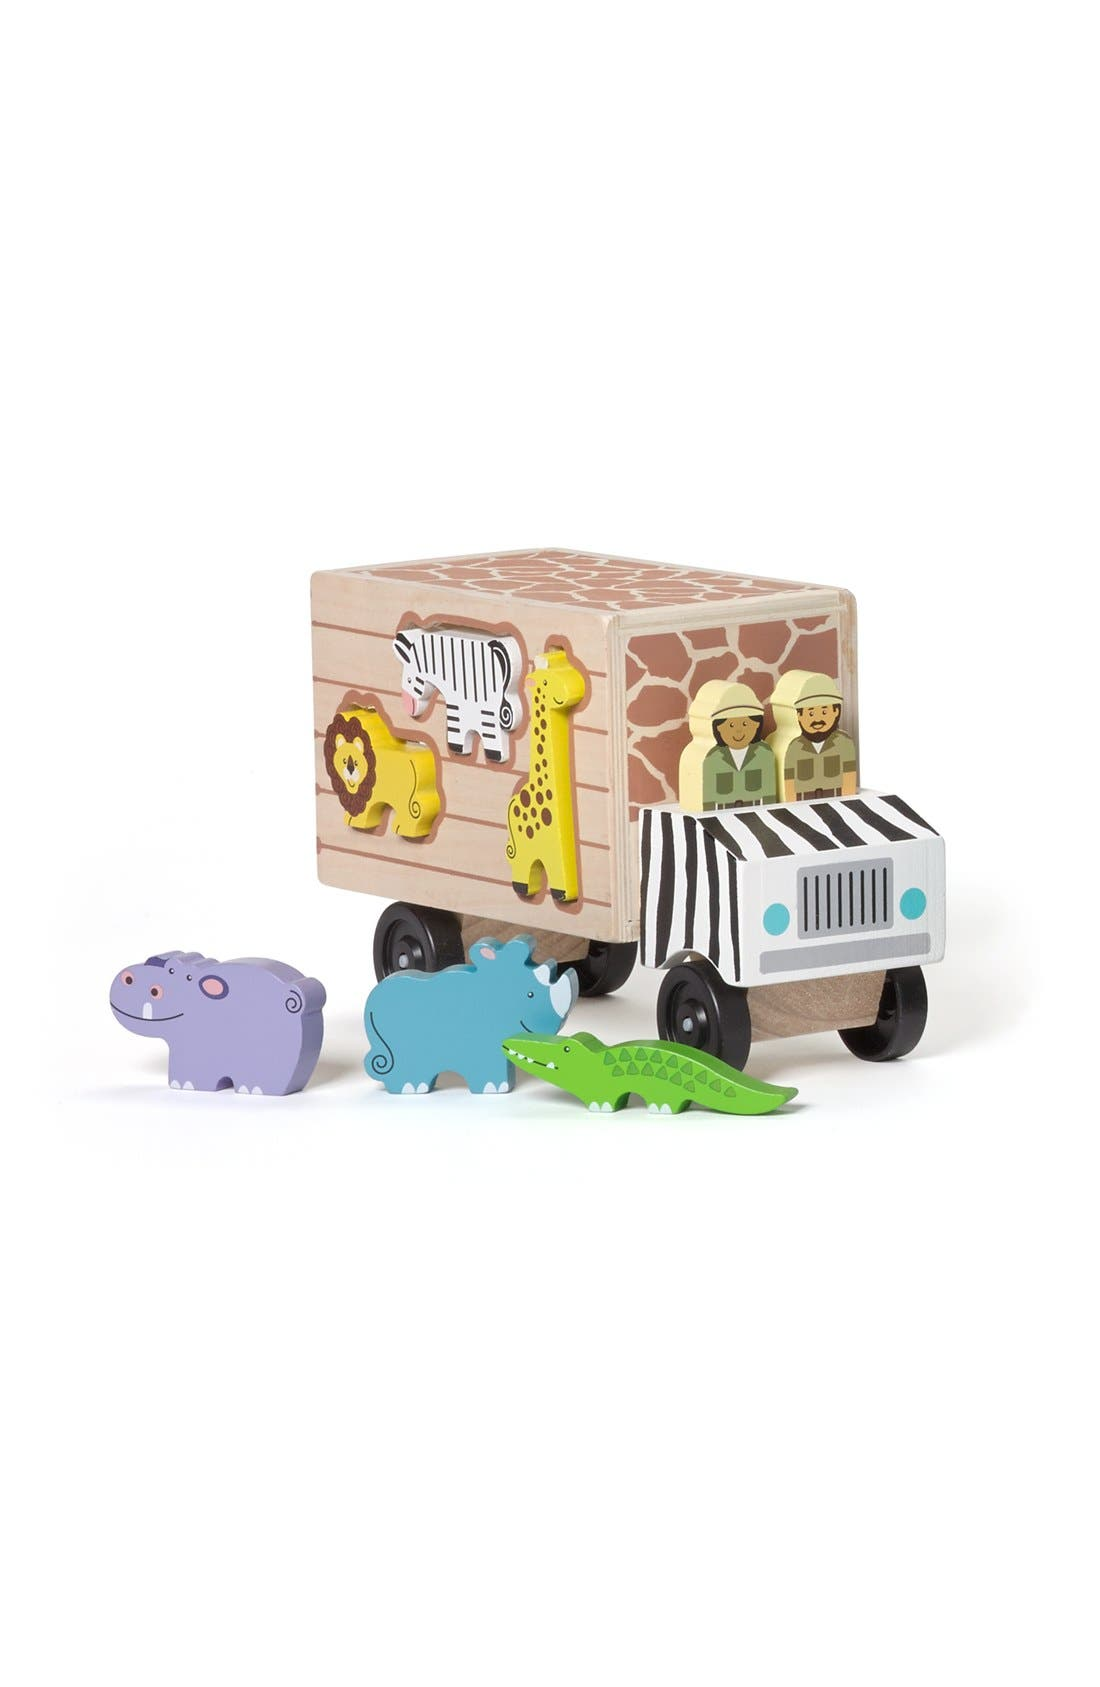 'Animal Rescue' Shape Sorting Wooden Truck Toy,                             Alternate thumbnail 3, color,